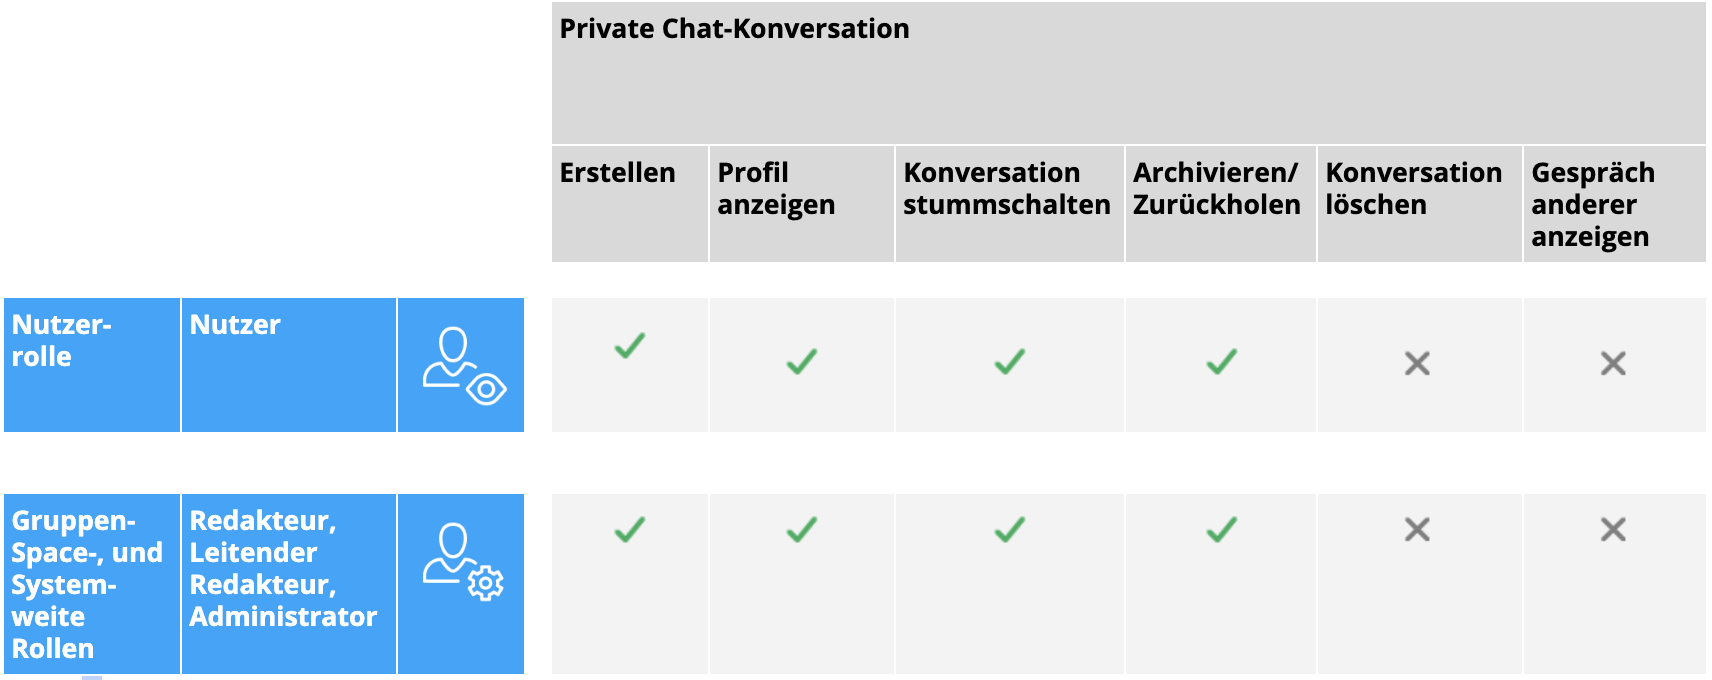 Private_Conversation_de.png